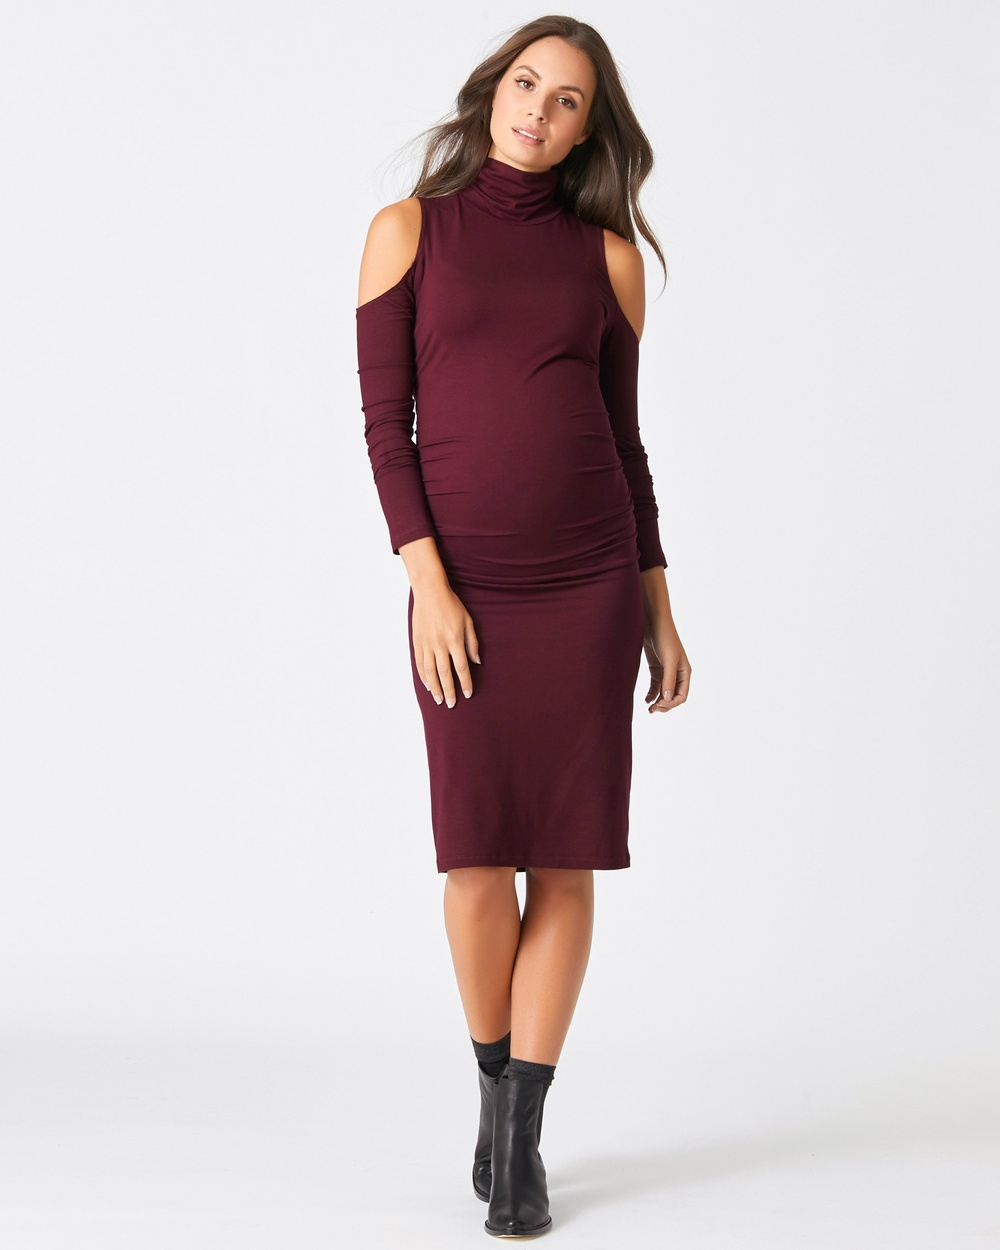 Pea in a Pod Maternity Frankie Cut Out Dress Bodycon Dresses Burgandy Frankie Cut-Out Dress